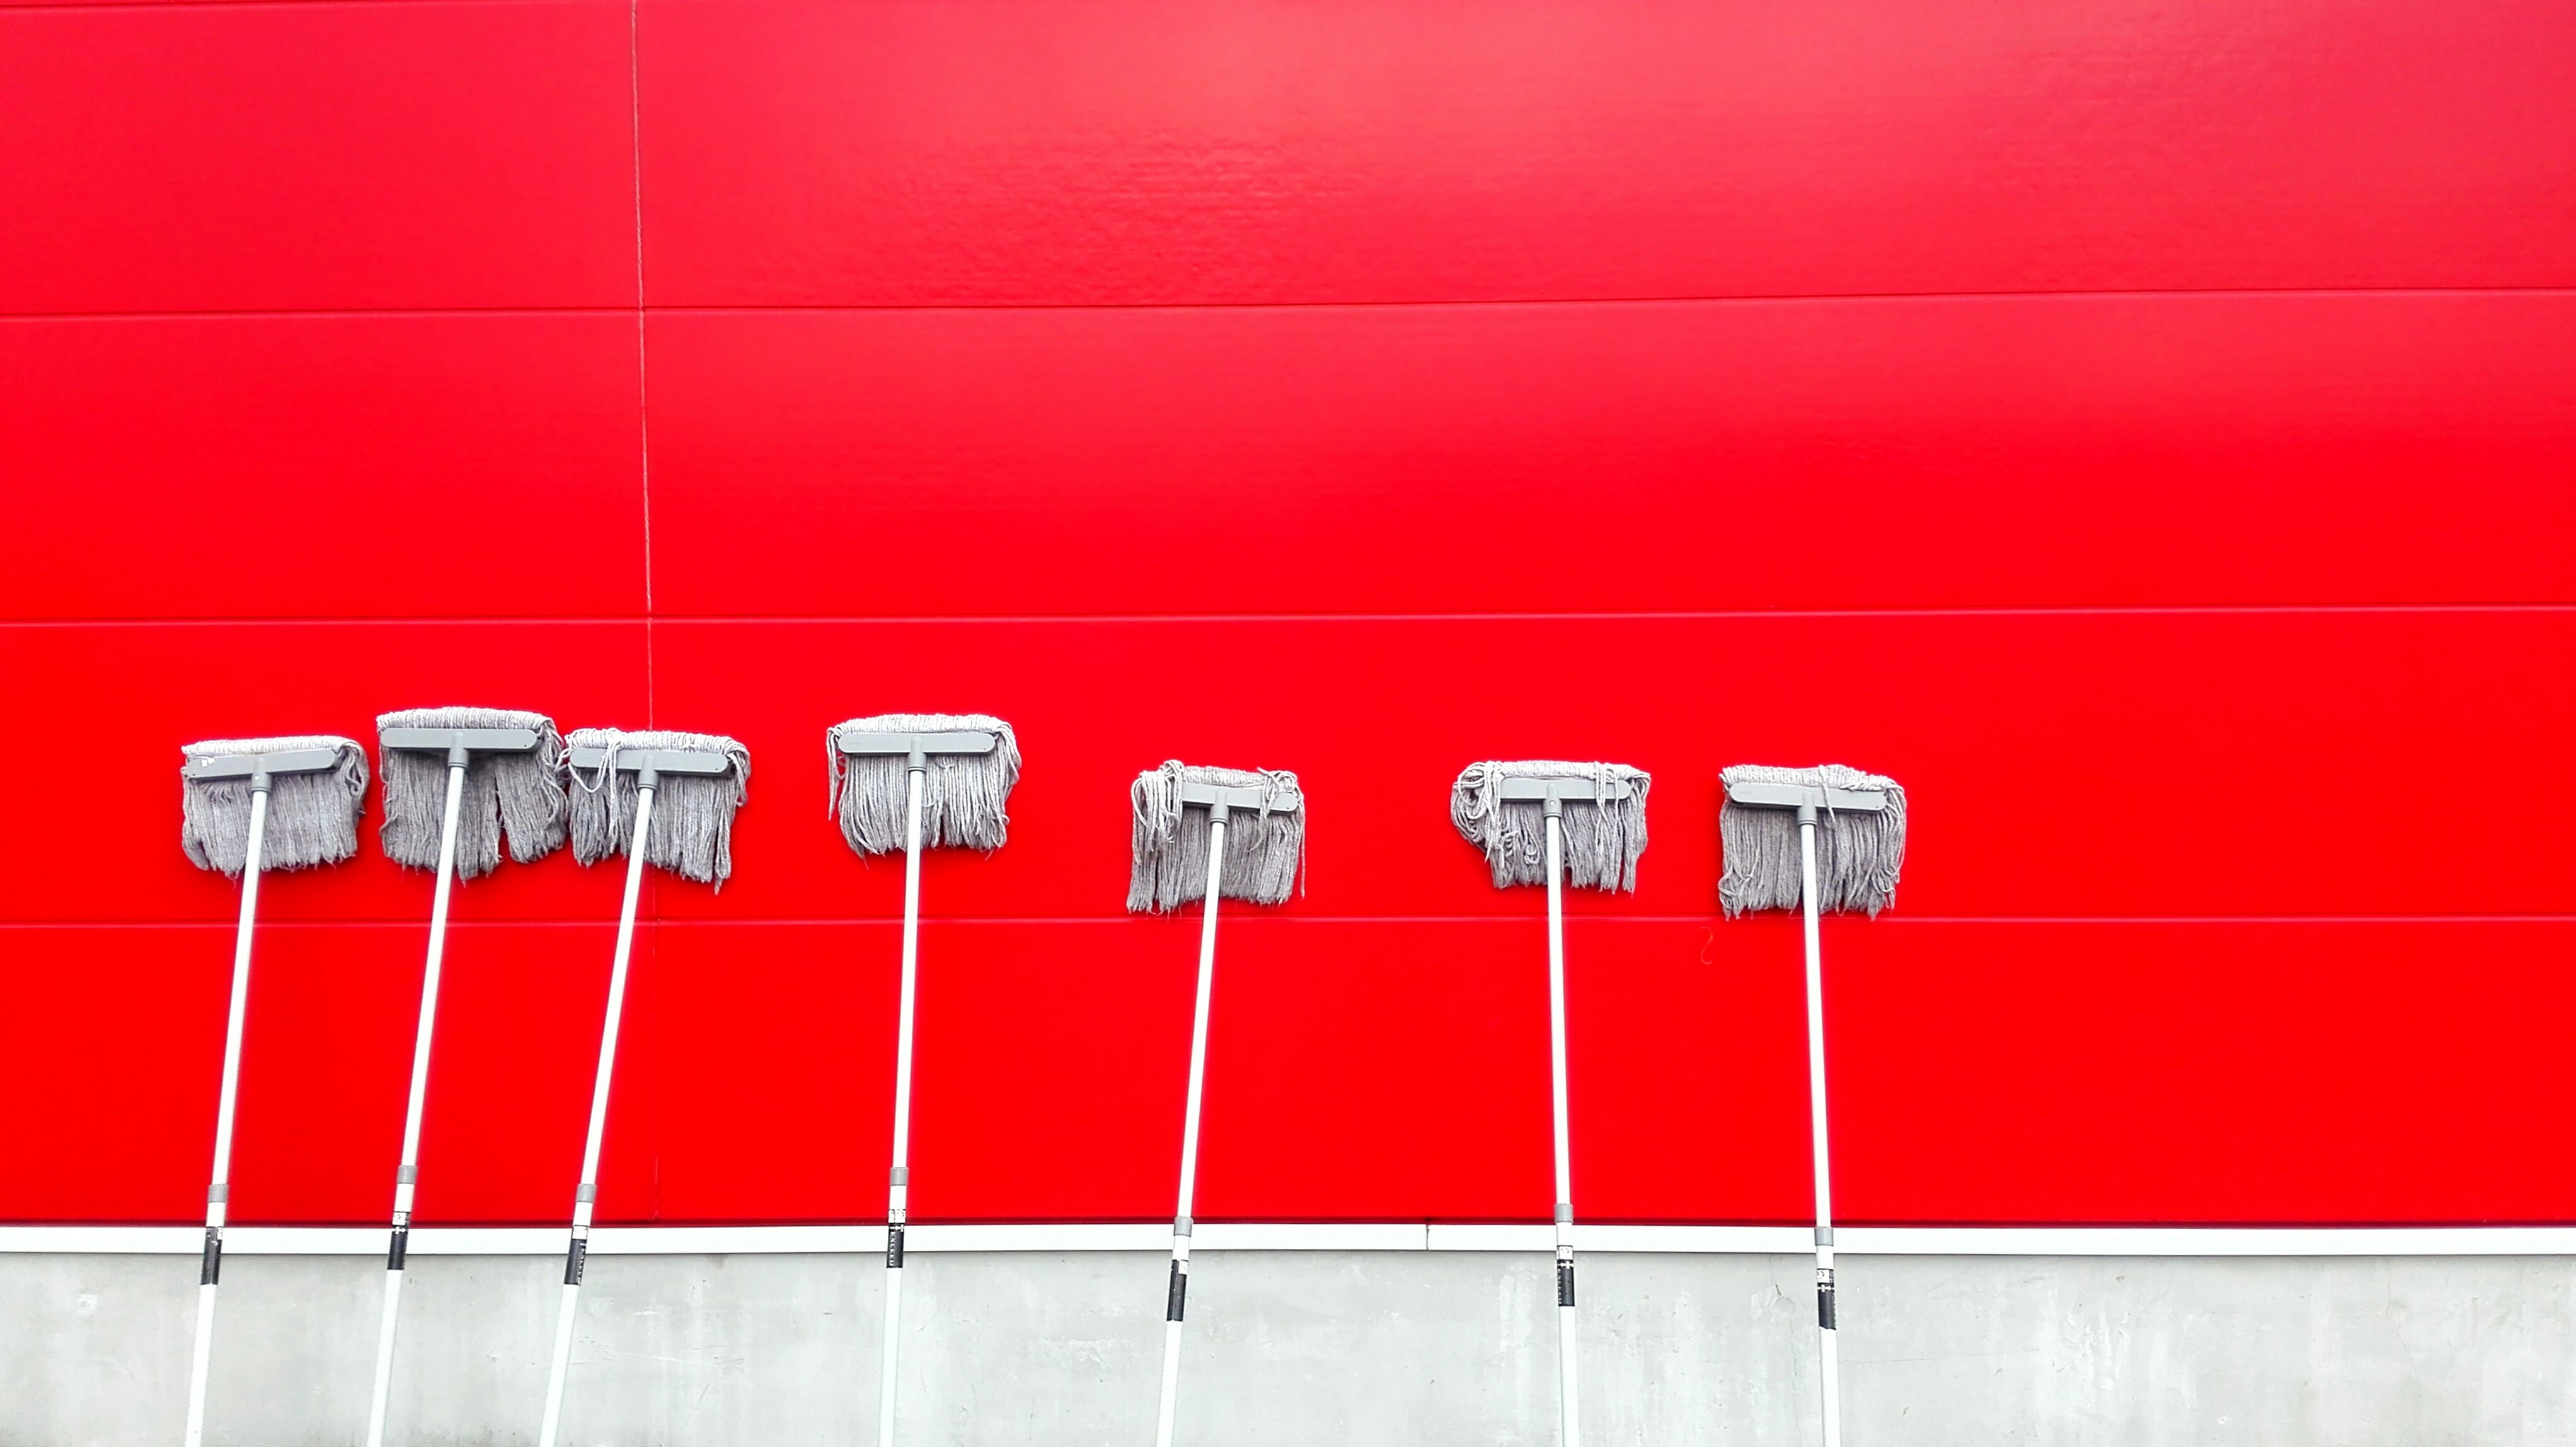 Seven upright mops stand against a red wall